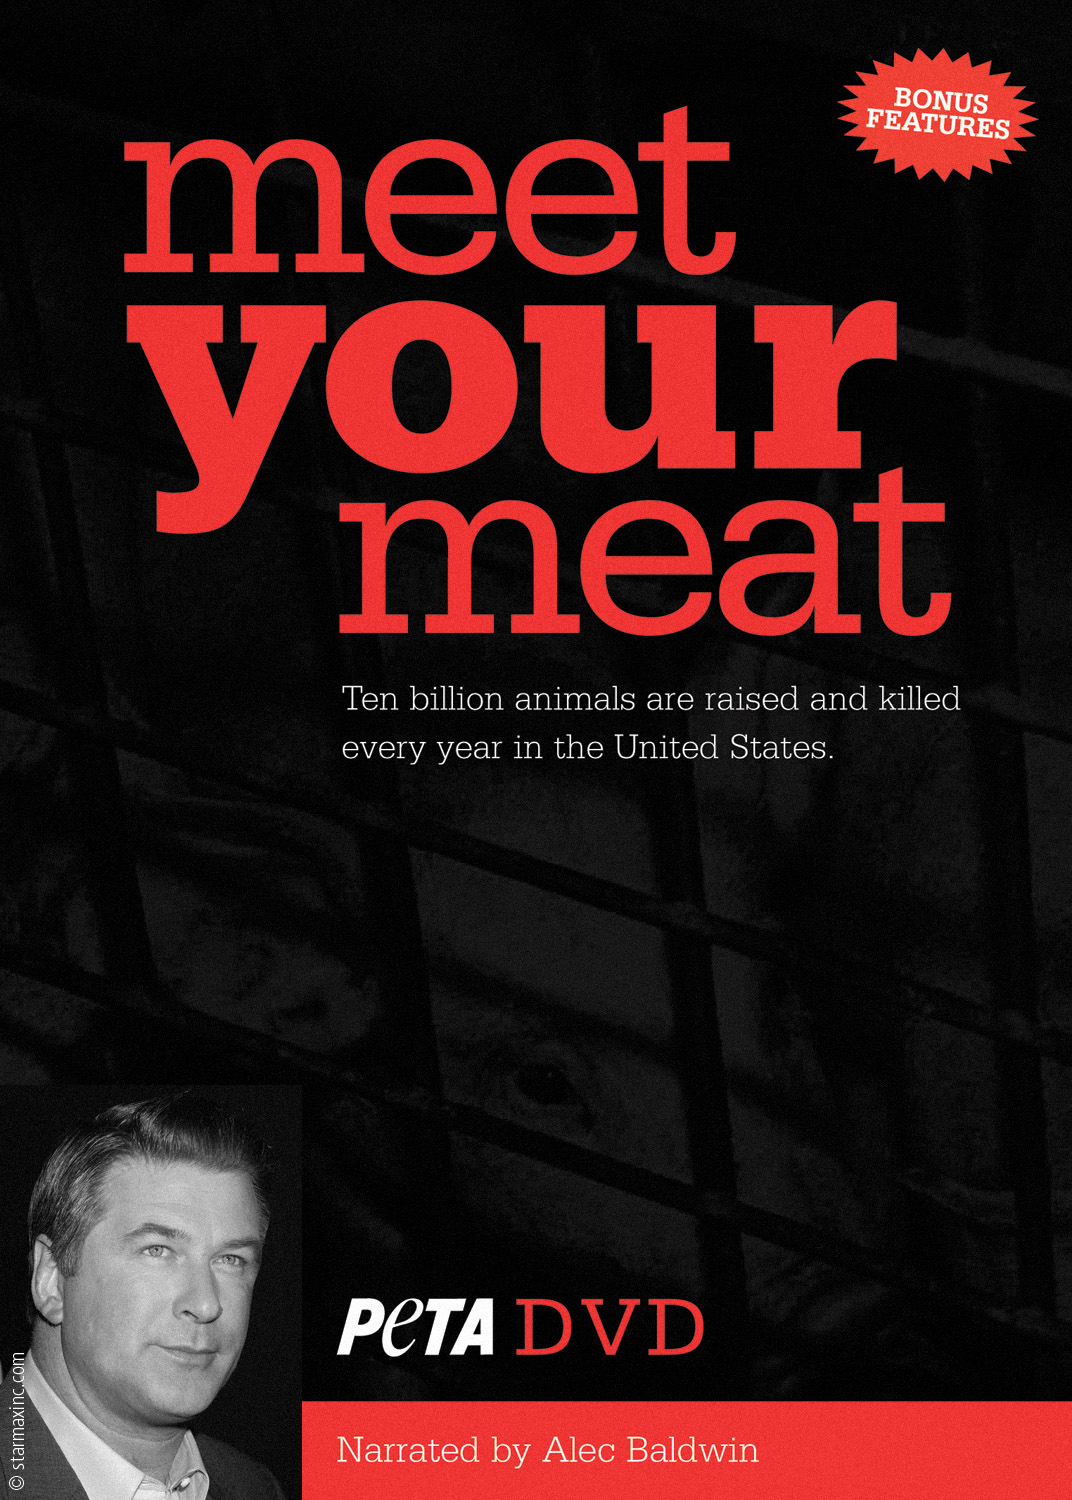 Meet-Your-Meat